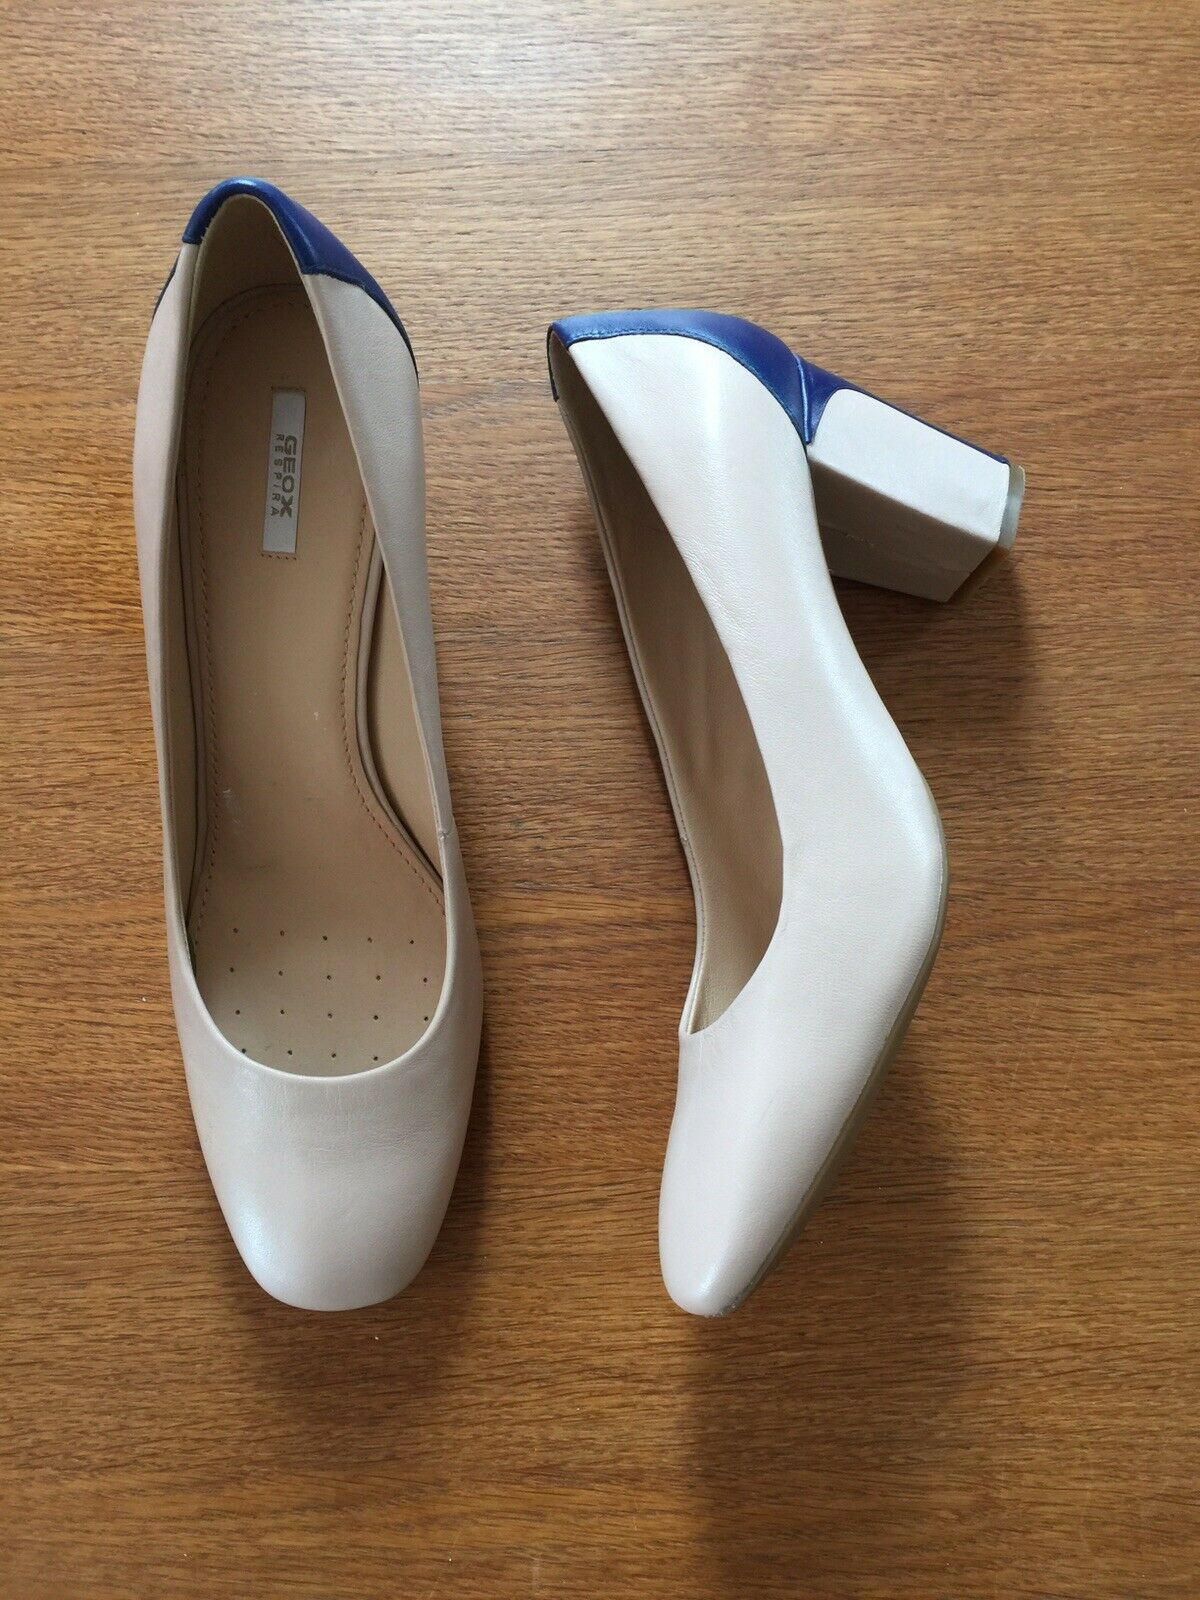 GEOX Ladies Nude Royal bluee Leather Block Respira Square Toe Heels shoes UK7 New